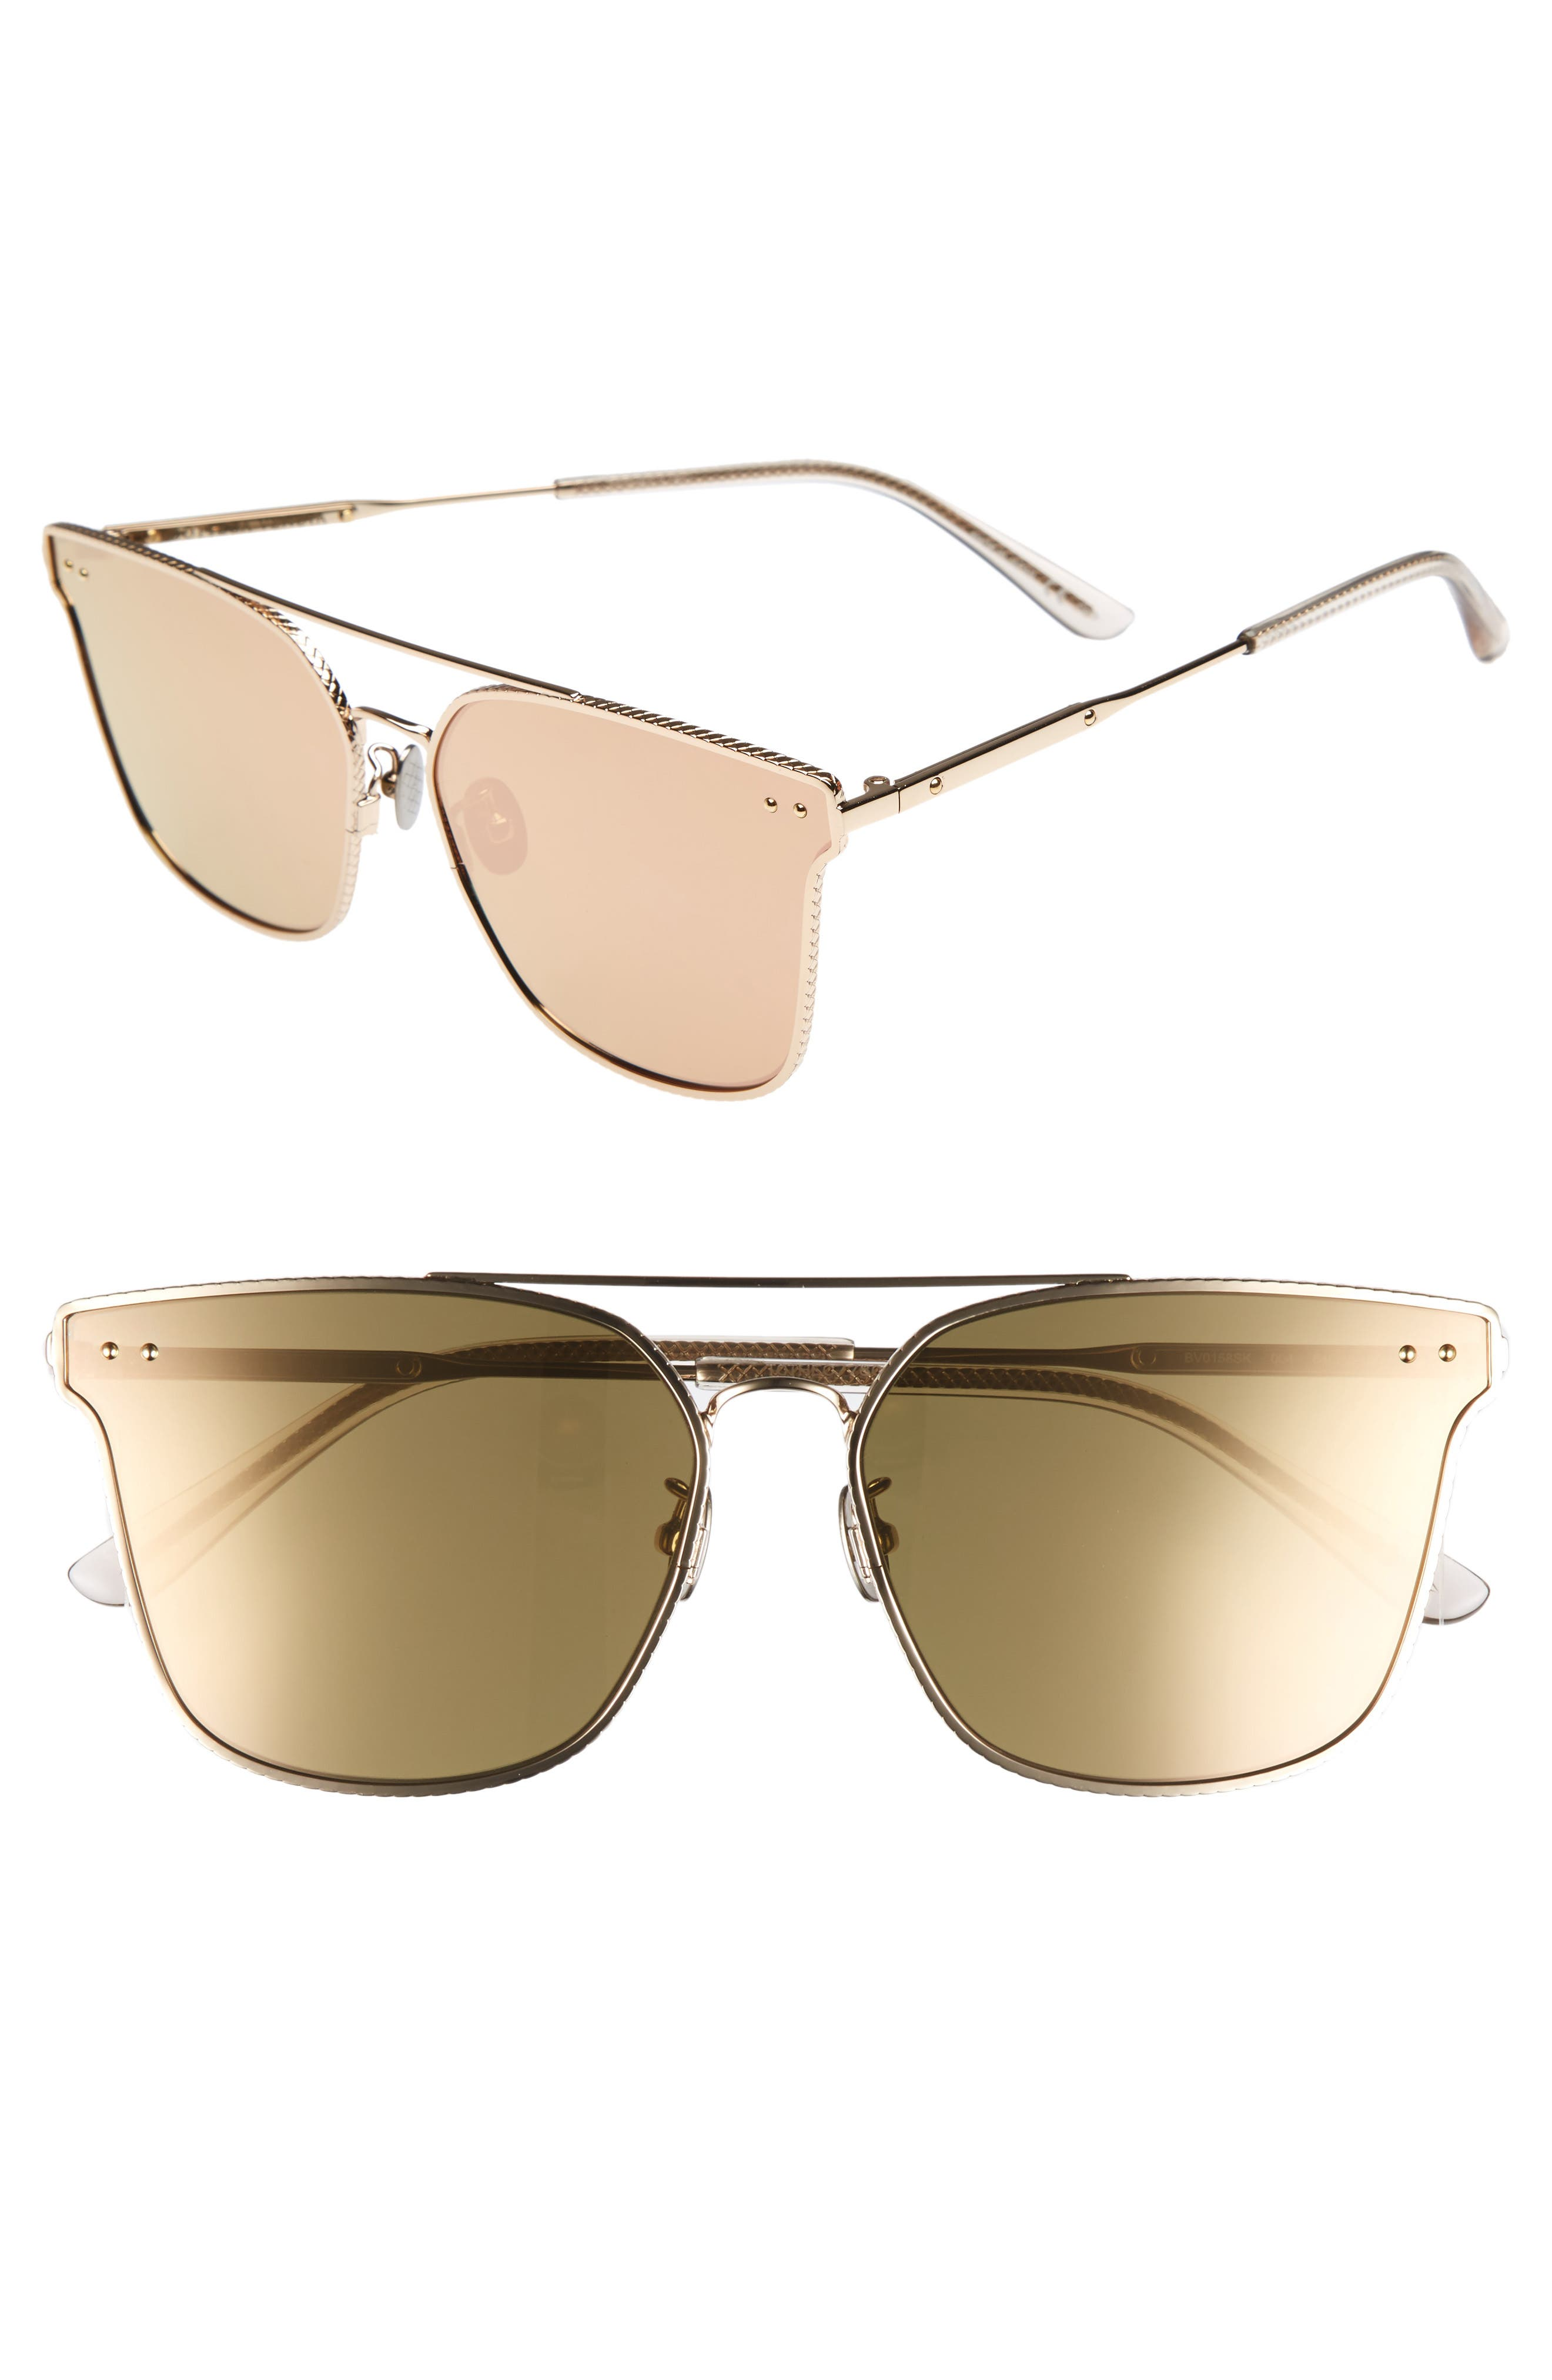 Bottega Veneta 64mm Sunglasses